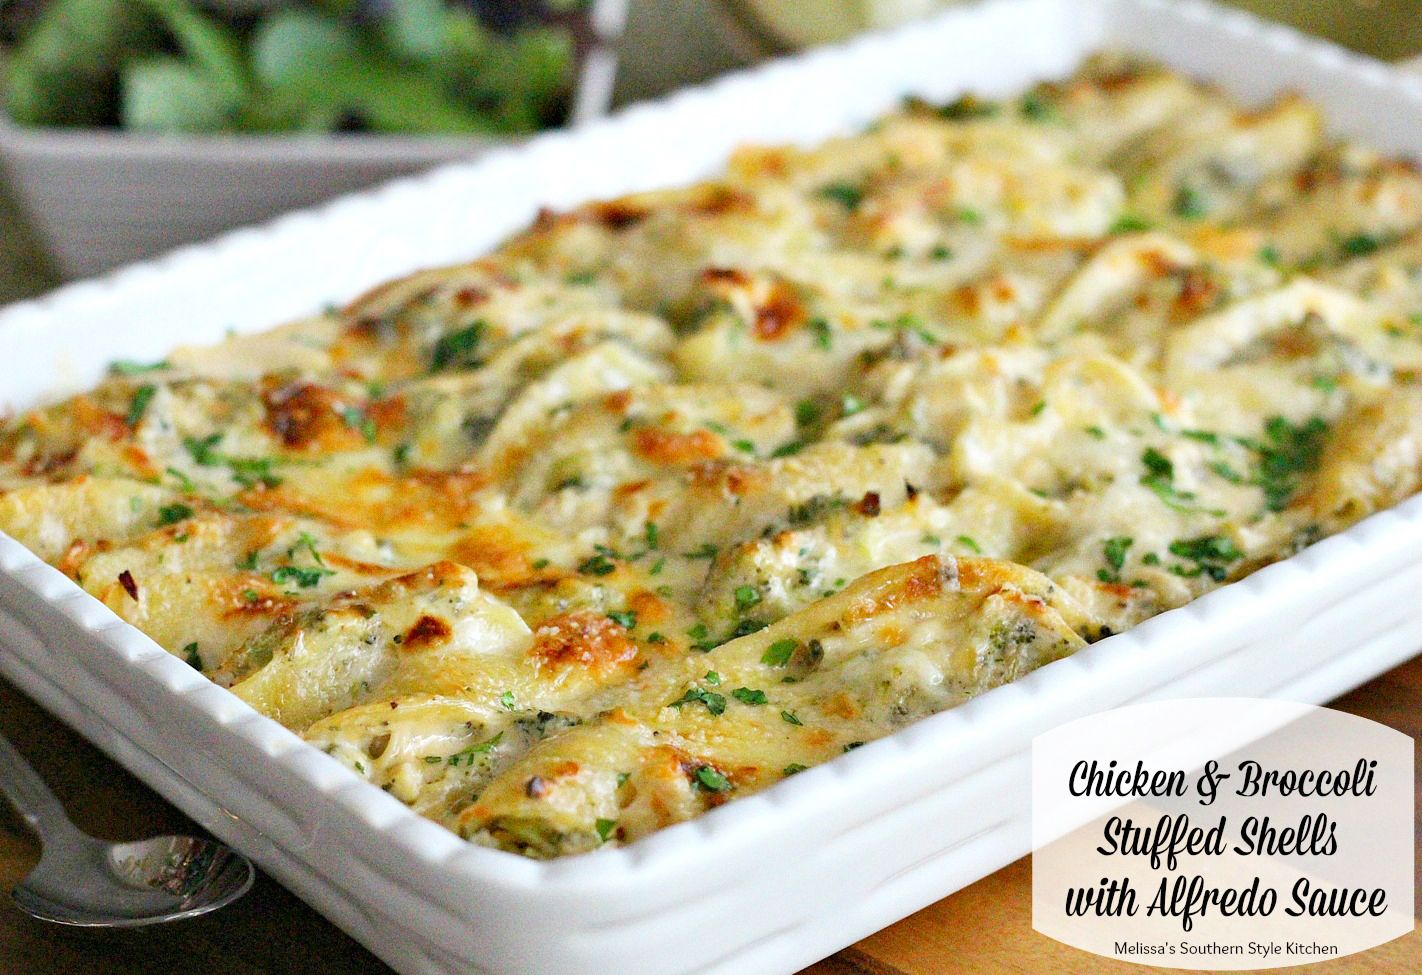 Chicken And Broccoli Stuffed Shells With Alfredo Sauce - Stuffed shells are a hot favorite at our house. My mind whirls with ideas of what type of goodness I can fill them with next.